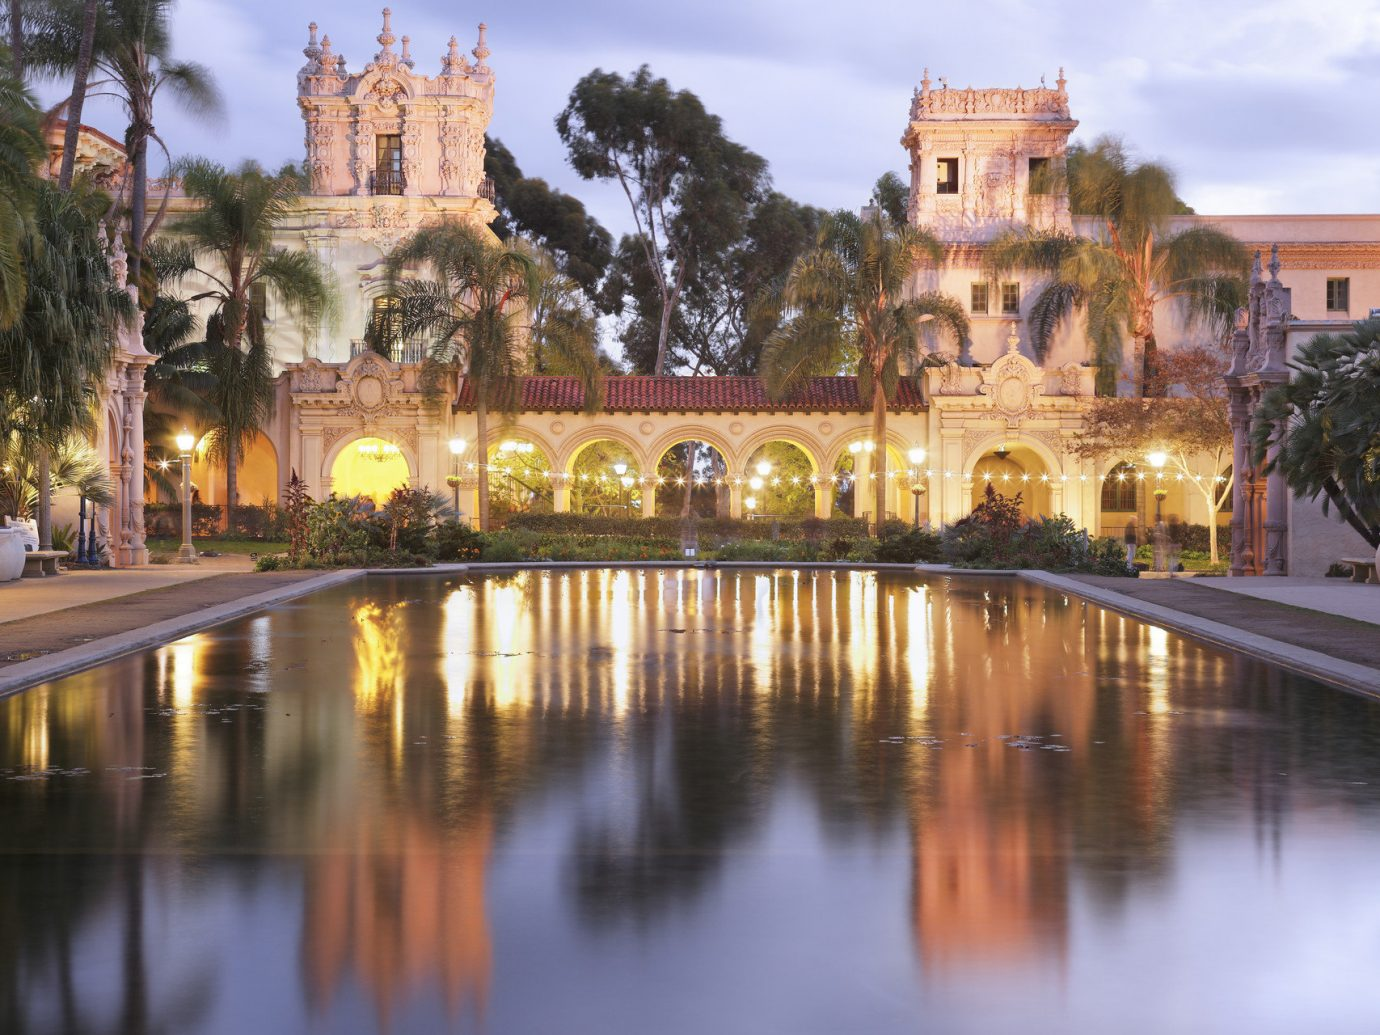 Trip Ideas outdoor water reflection landmark night cityscape plaza evening tourism palace waterway estate cathedral place of worship town square